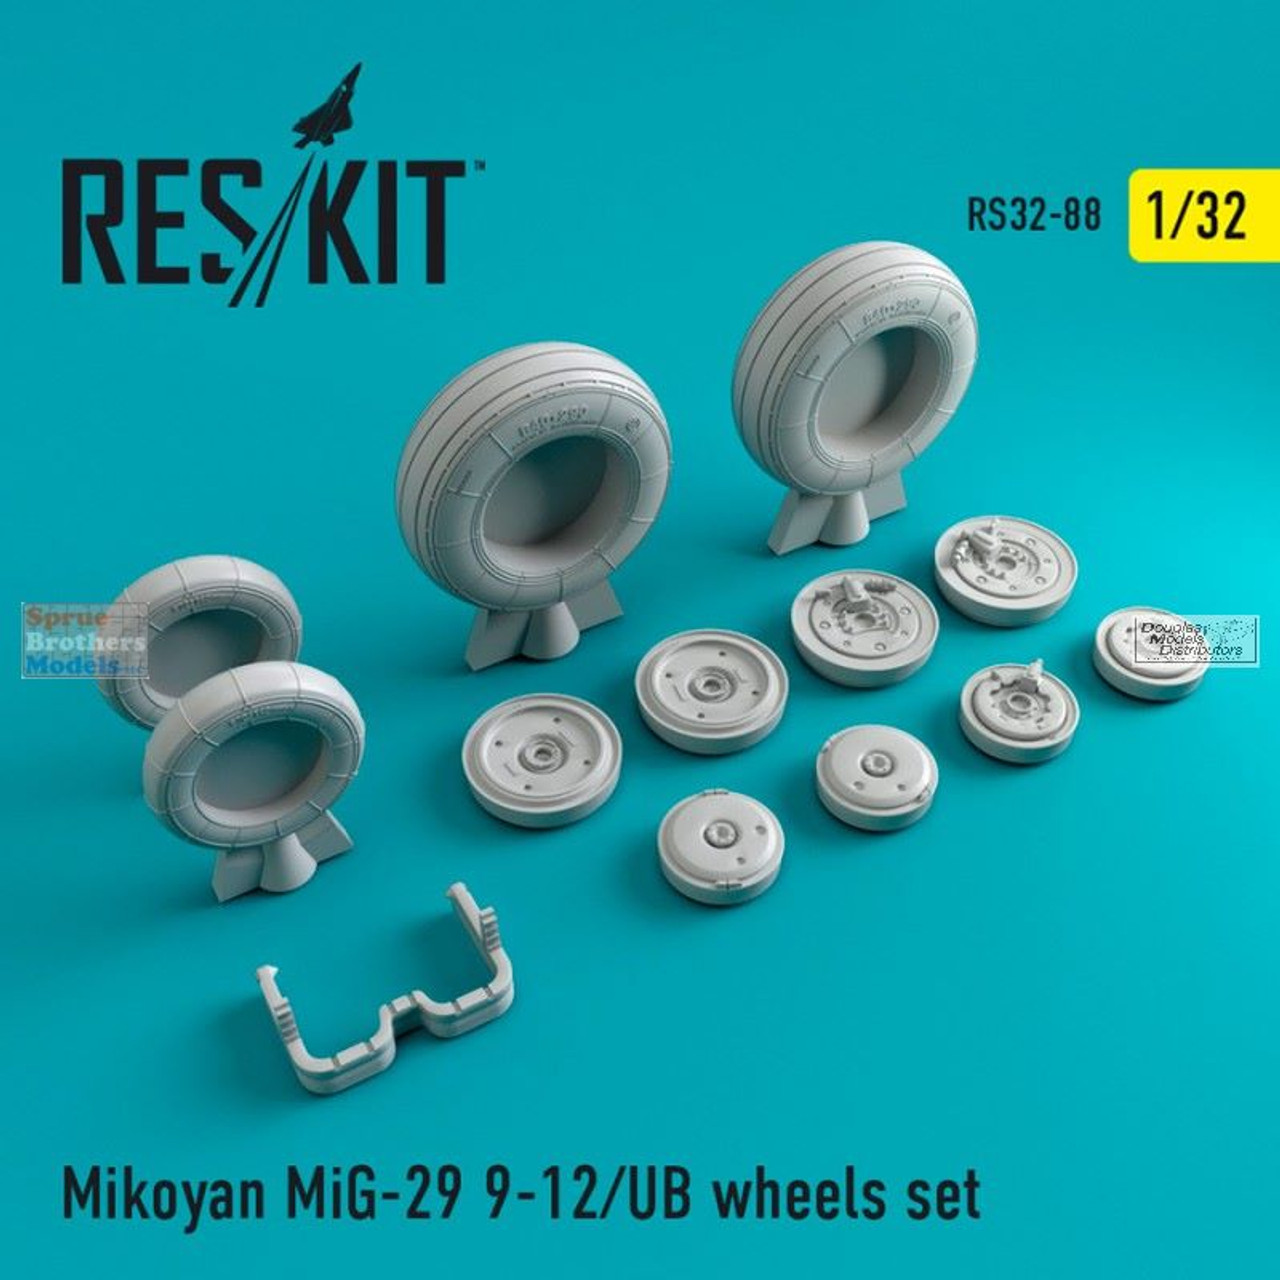 RESRS320088 1:32 ResKit MiG-29UB Fulcrum (9-12) Wheels Set